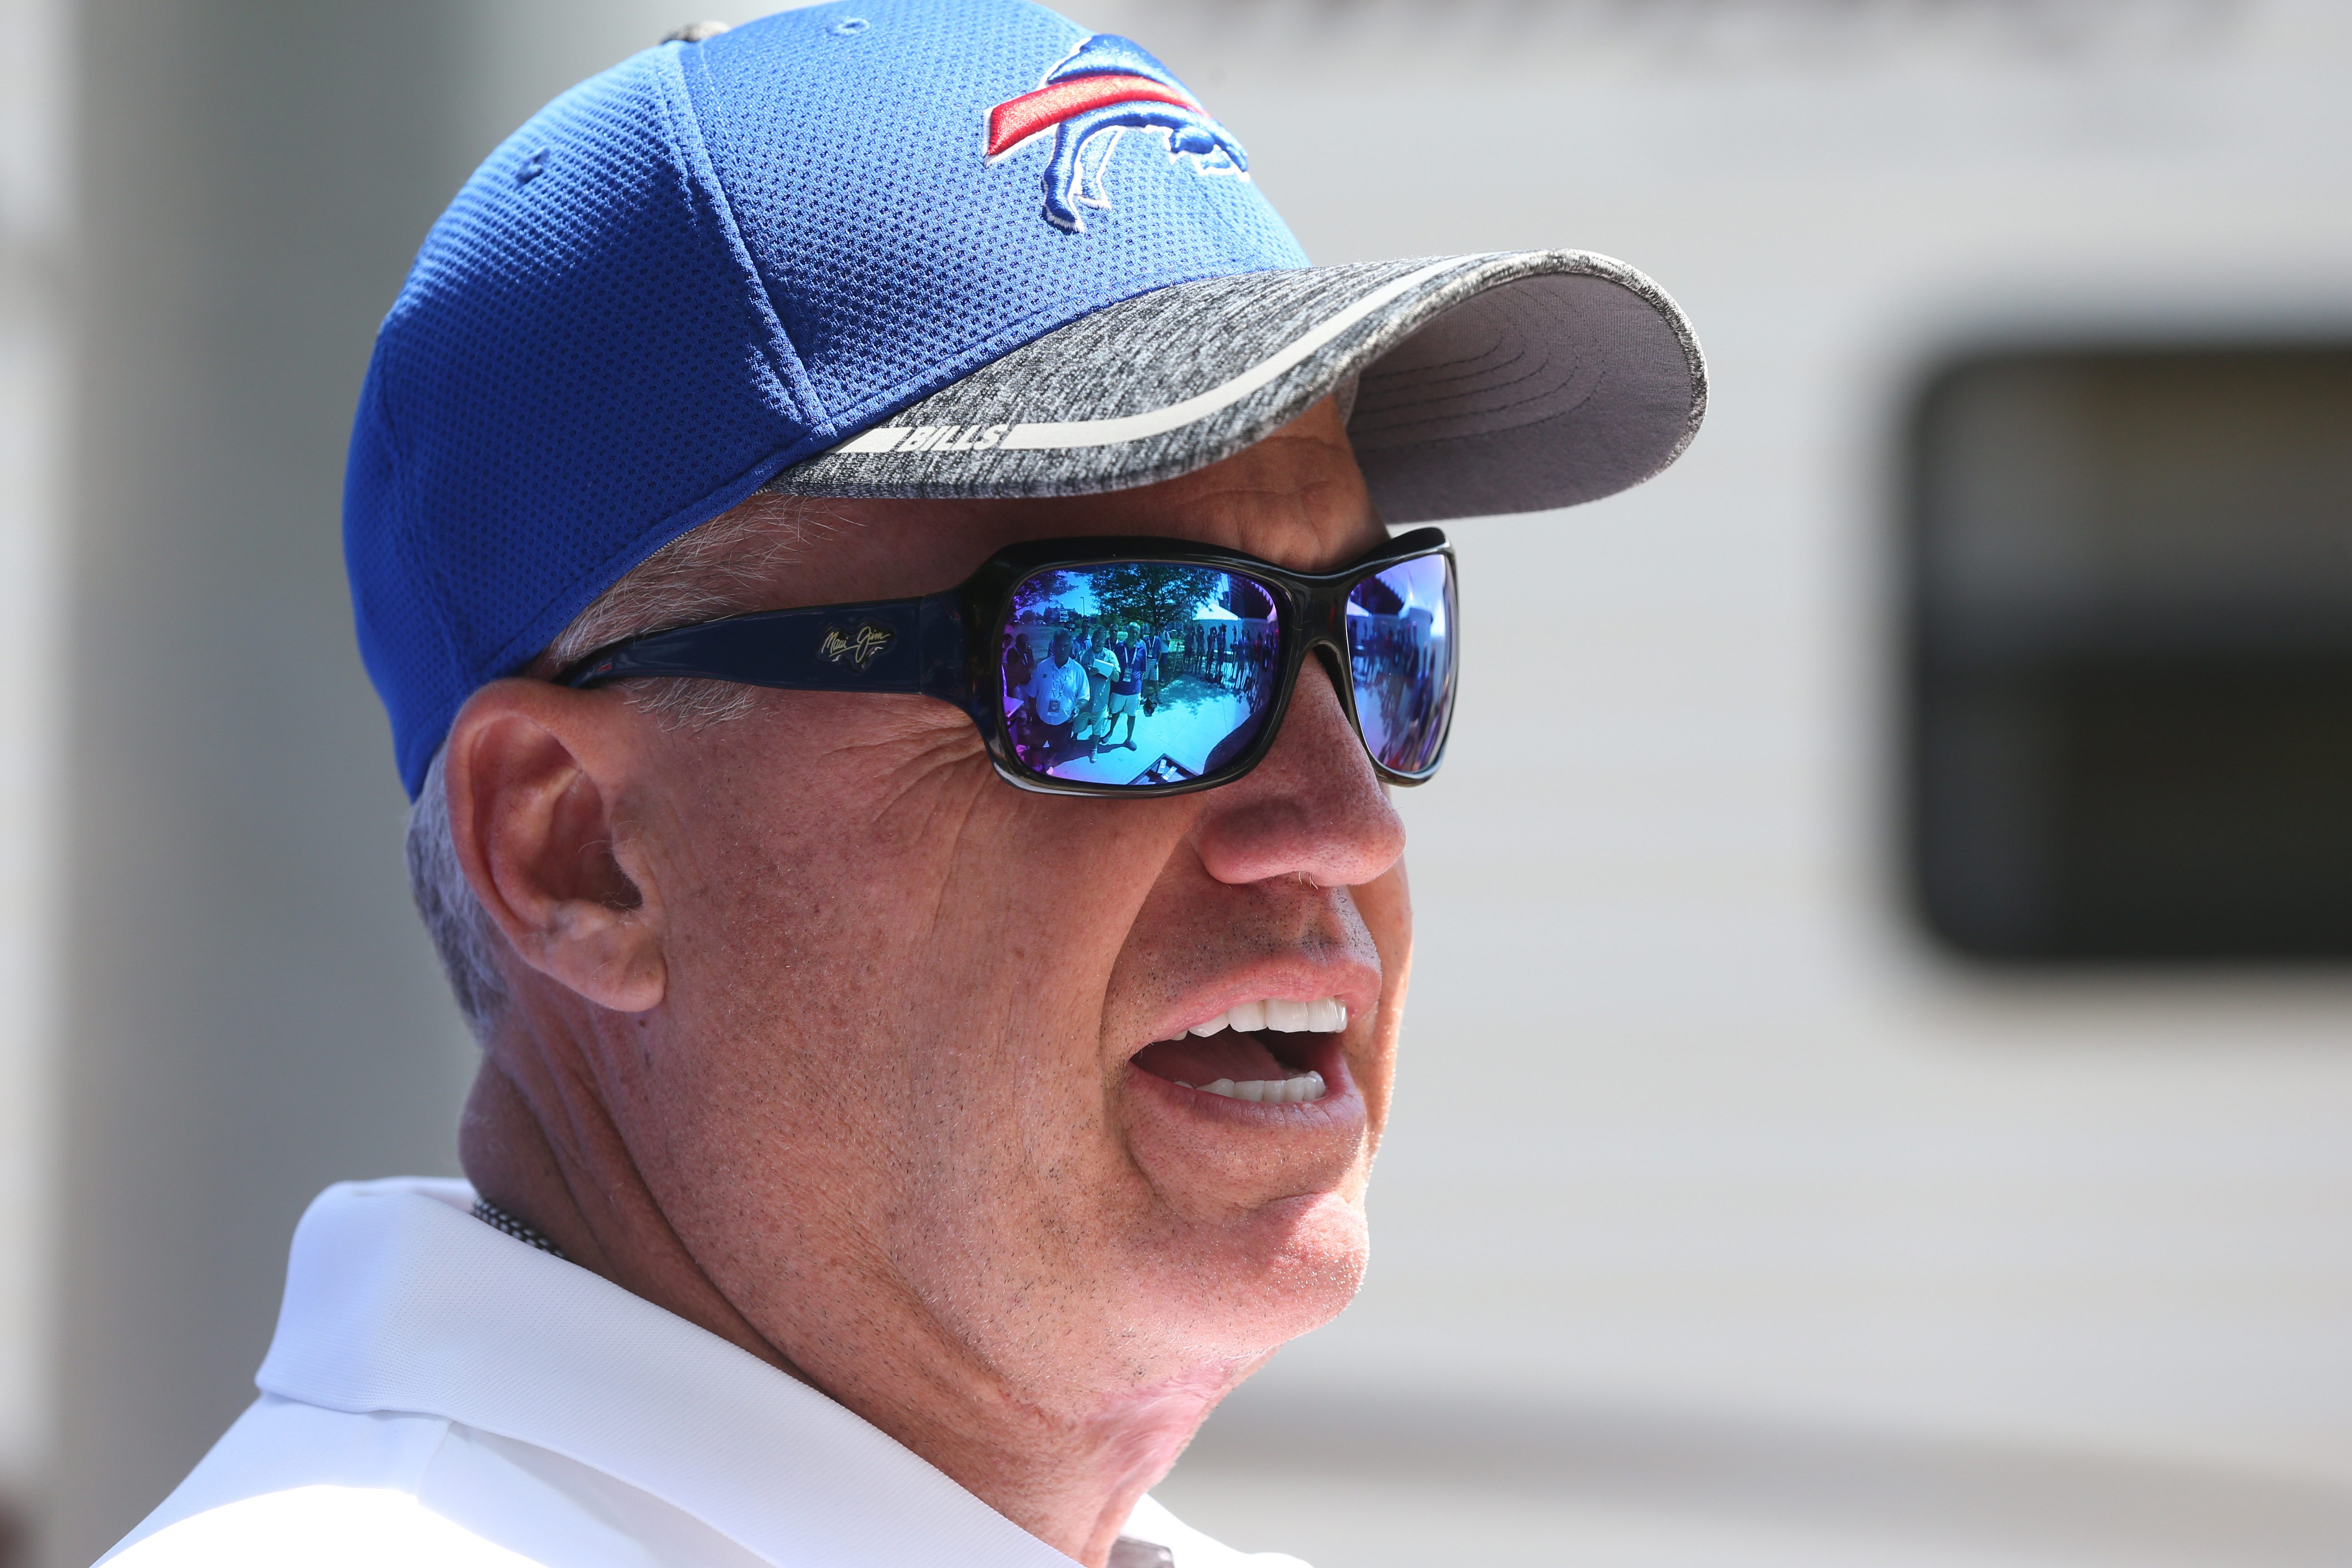 Buffalo Bills head coach Rex Ryan talks to the press at the start of 2016 training camp at St. John Fisher College.  (James P. McCoy/ Buffalo News)